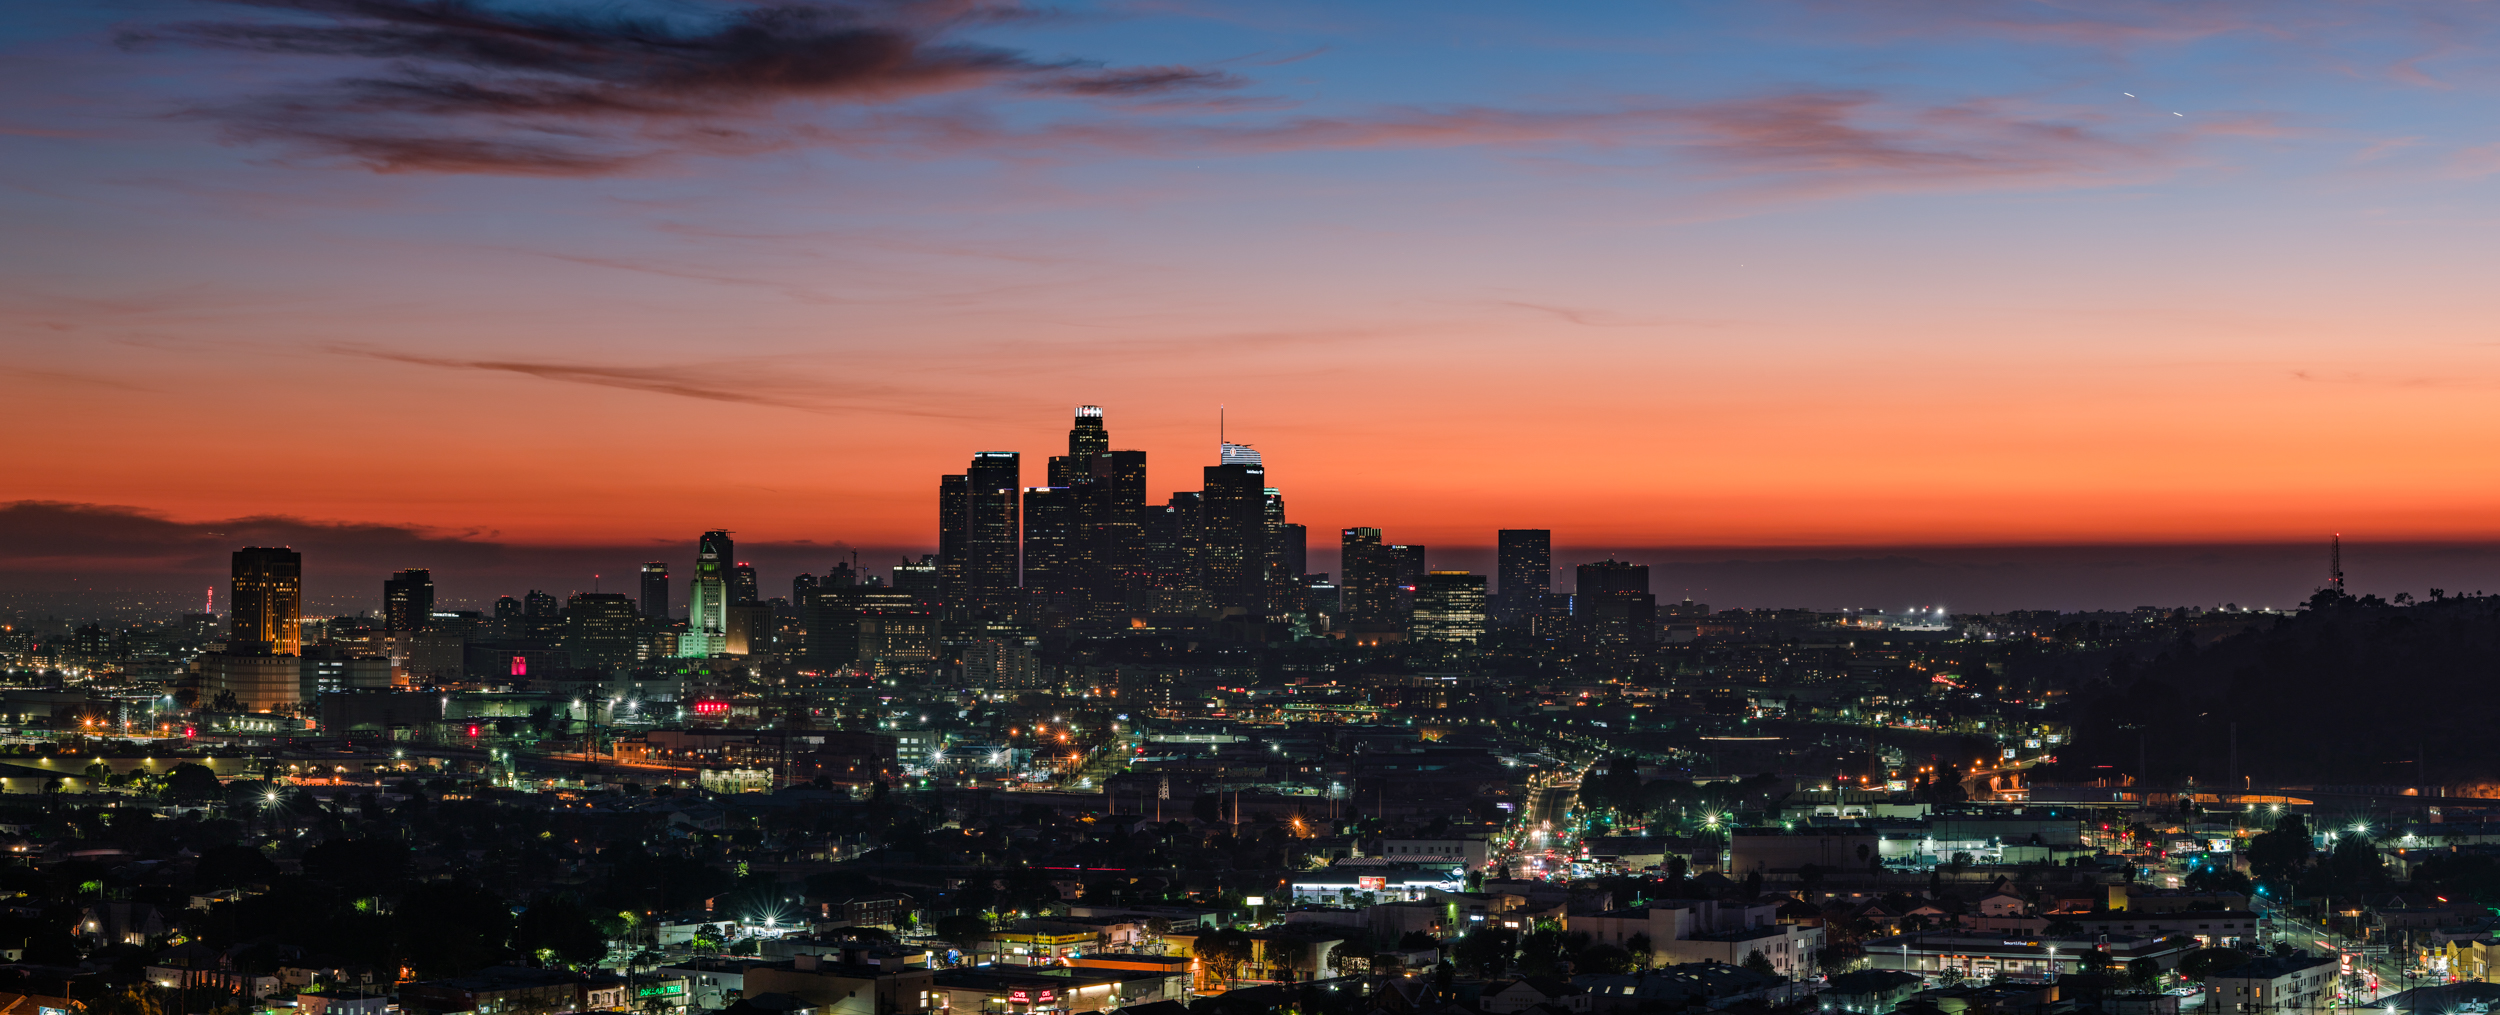 DTLA_DUSK SKYLINE FROM LINCOLN HEIGHTS_PANORAMA_001.jpg